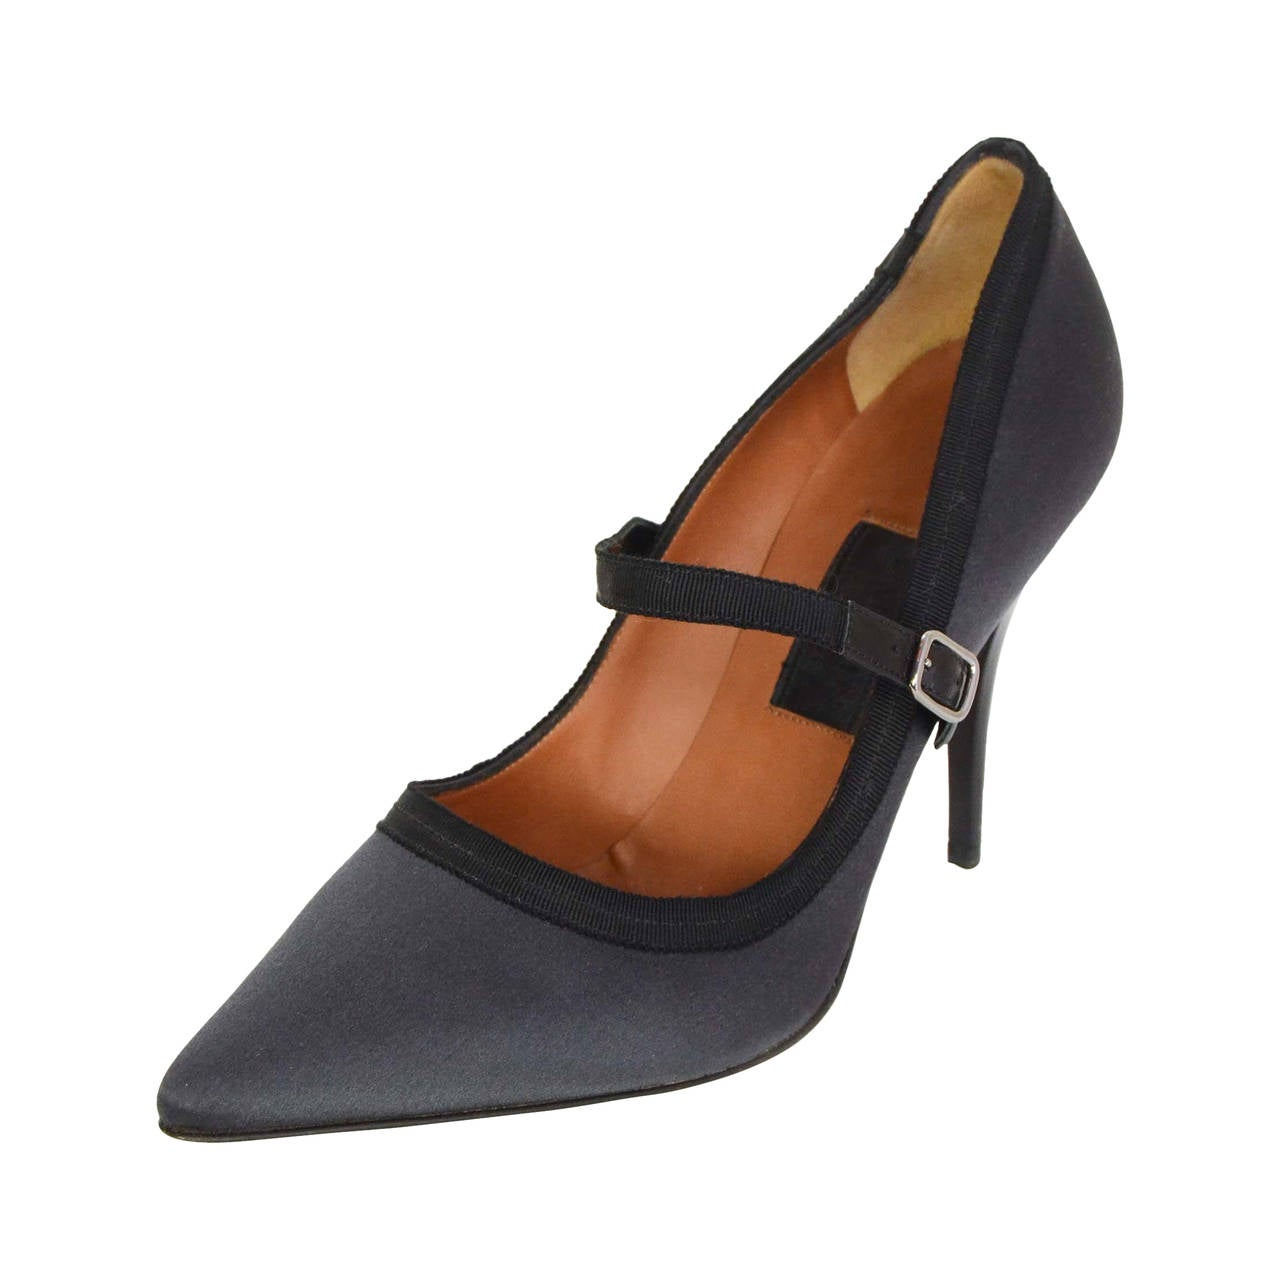 Lanvin Grey Satin Mary Jane Pumps Sz 38 5 For Sale At 1stdibs